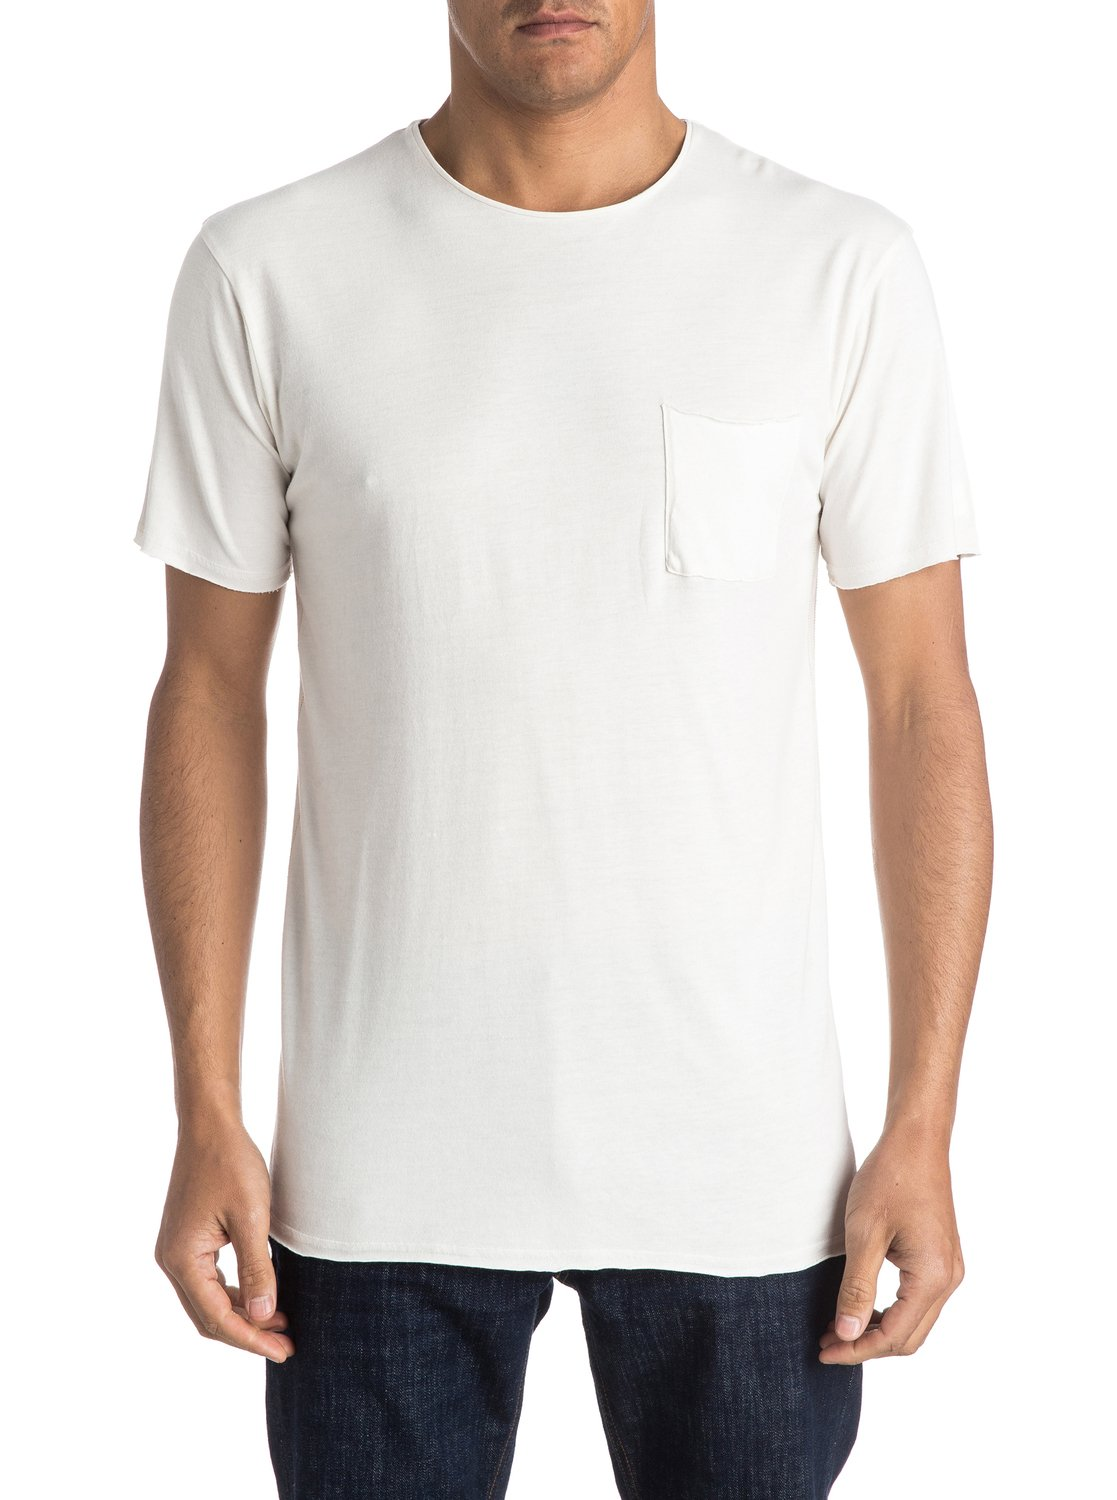 hot sale online a5008 9af15 The Organic - Pocket T-Shirt